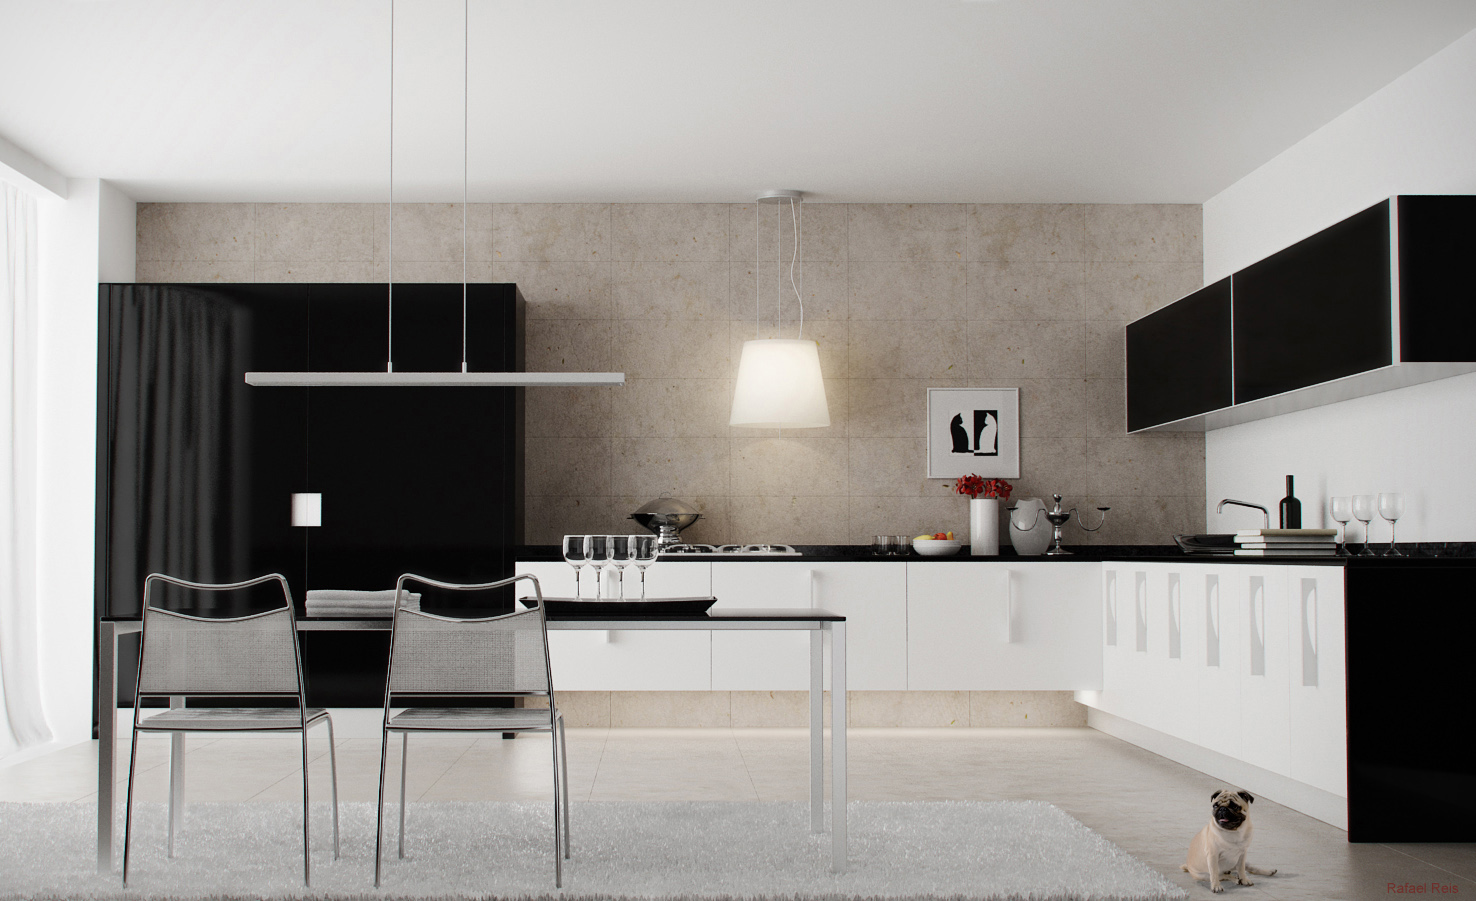 Black and White Kitchen Interior photo - 4